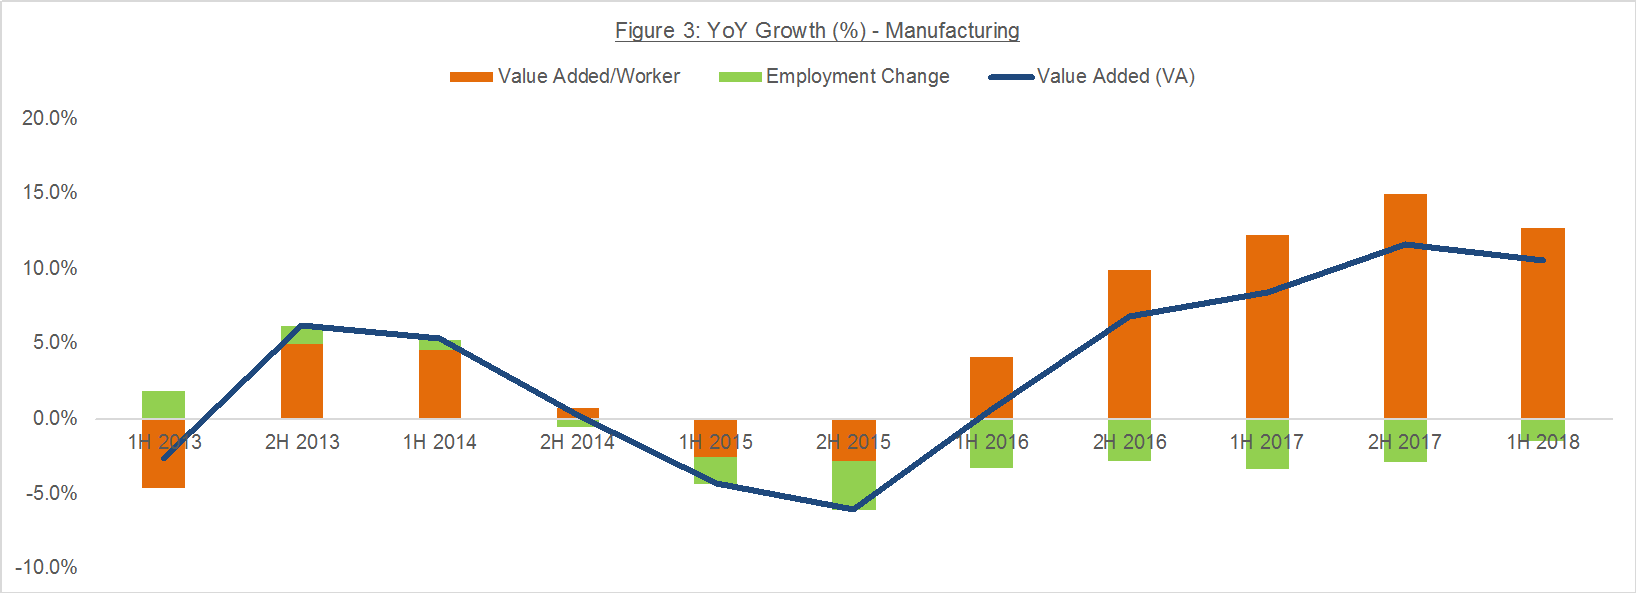 Figure 3: YoY Growth (%) - Manufacturing